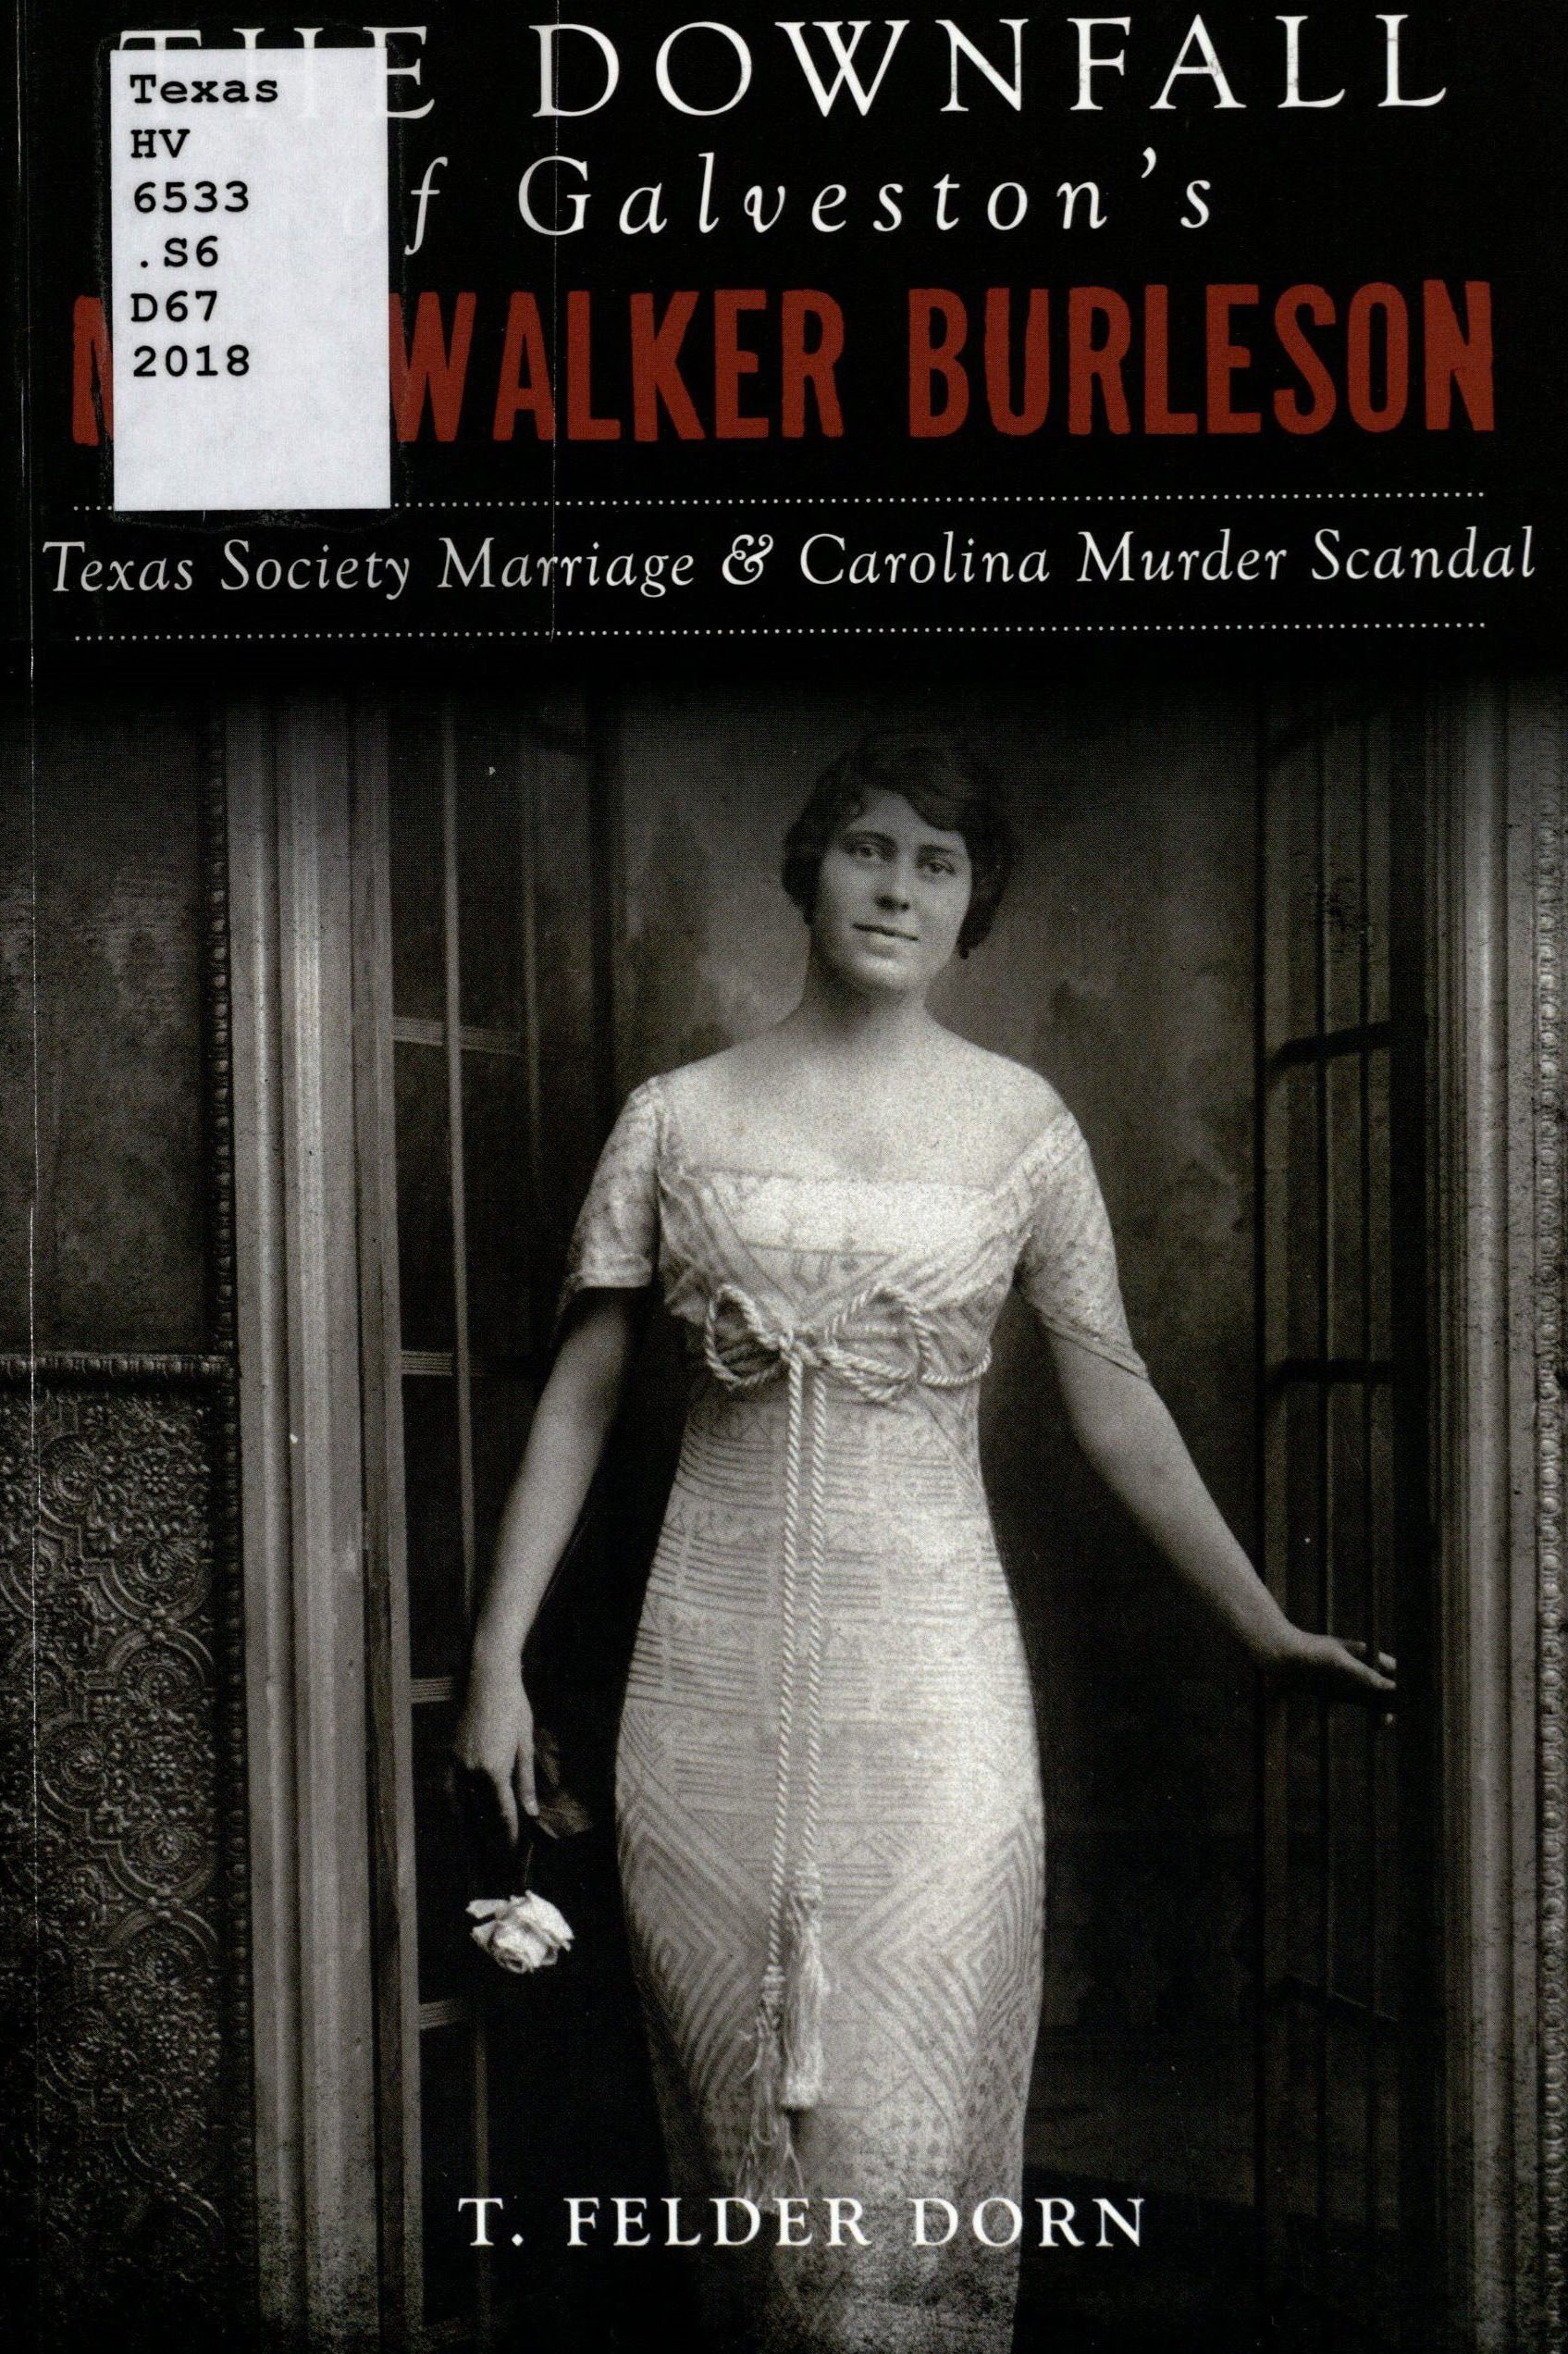 Dorn, T. Felder. The Downfall of Galveston's May Walker Burleson: Texas Society Marriage & Carolina Scandal. Charleston, SC: The History Press, 2018. Print.